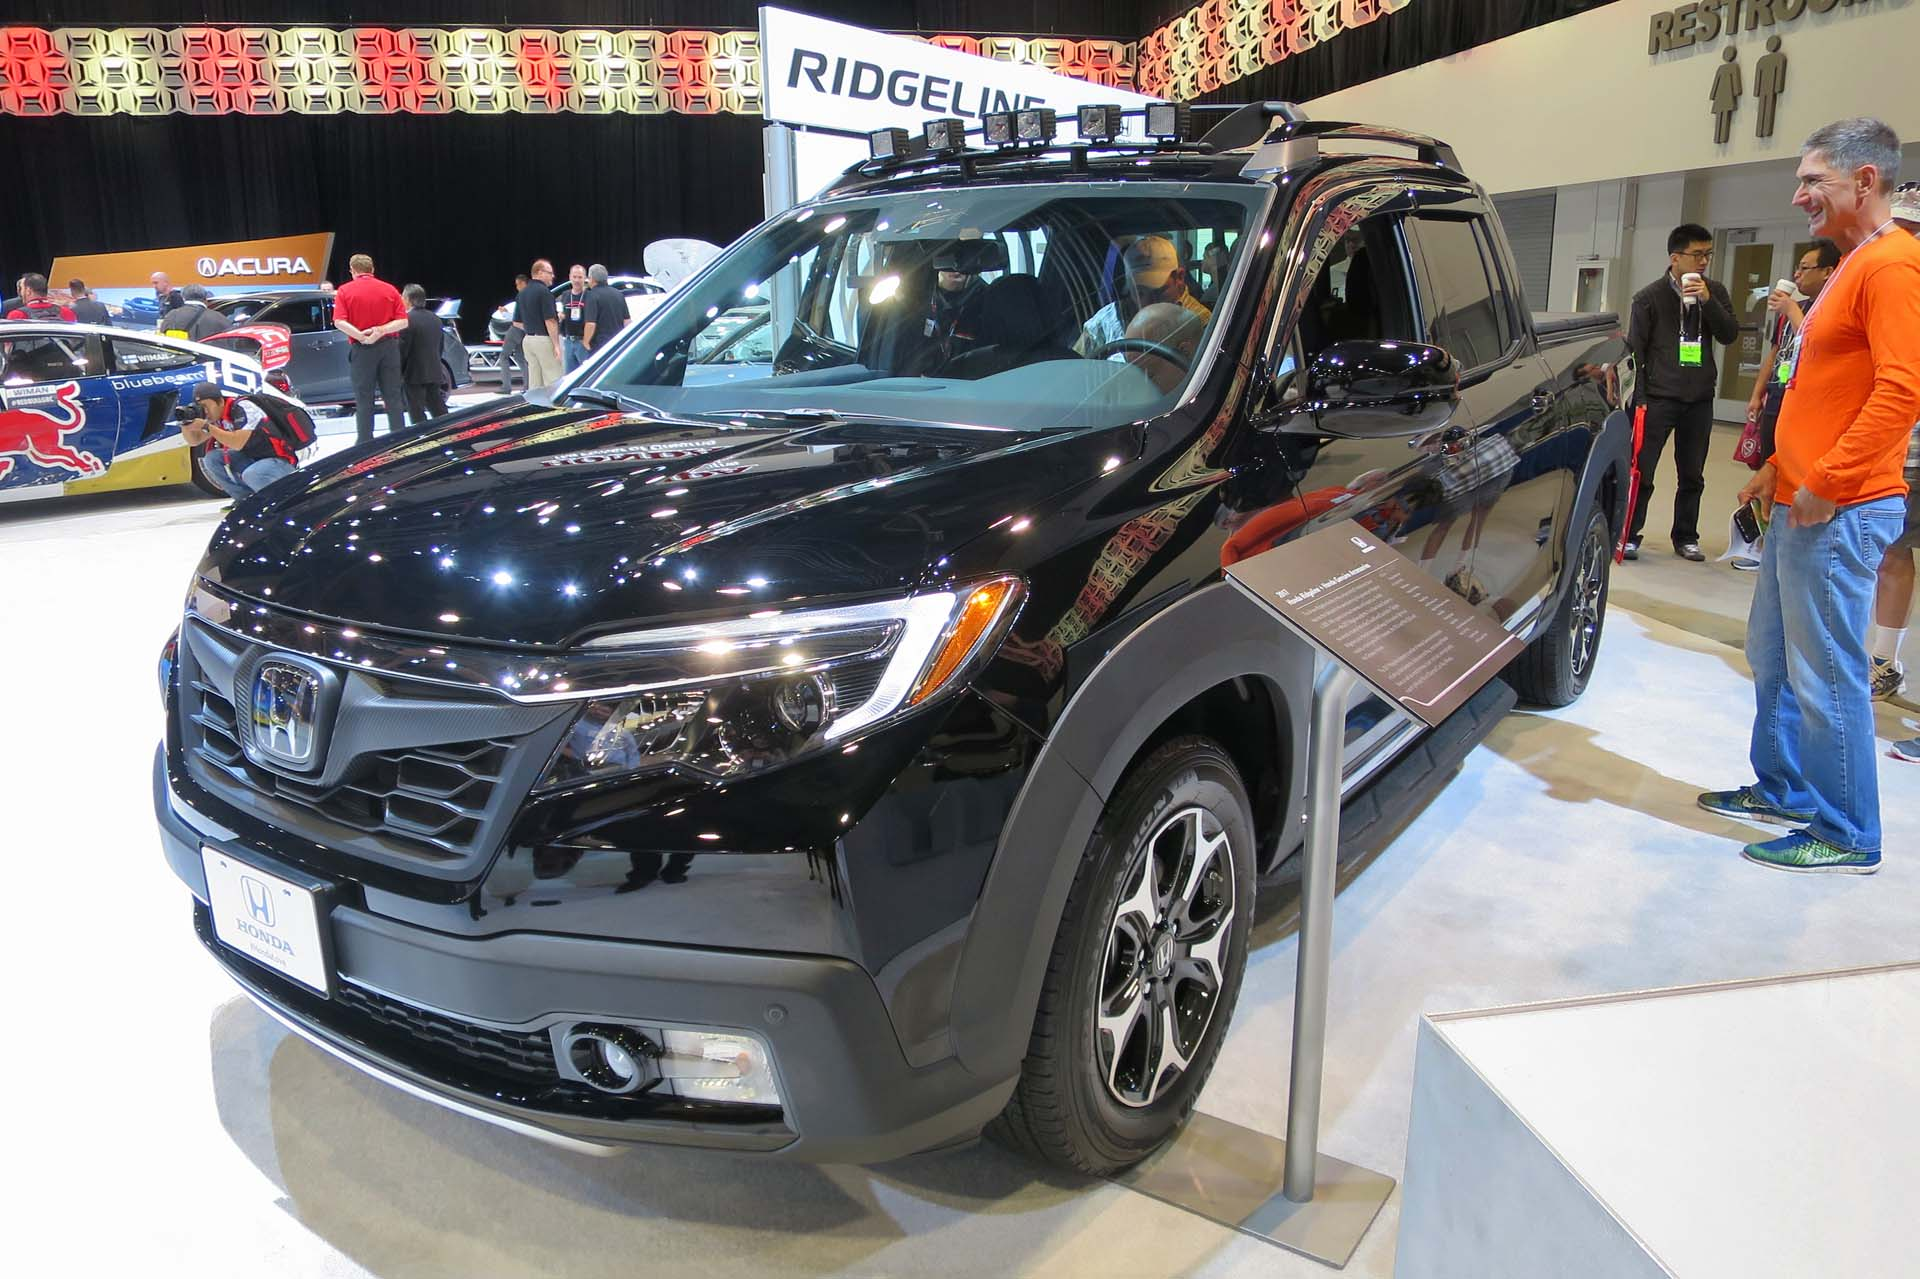 New accessories for the 2017 Honda Ridgeline include clearance lights and a hard tonneau cover.